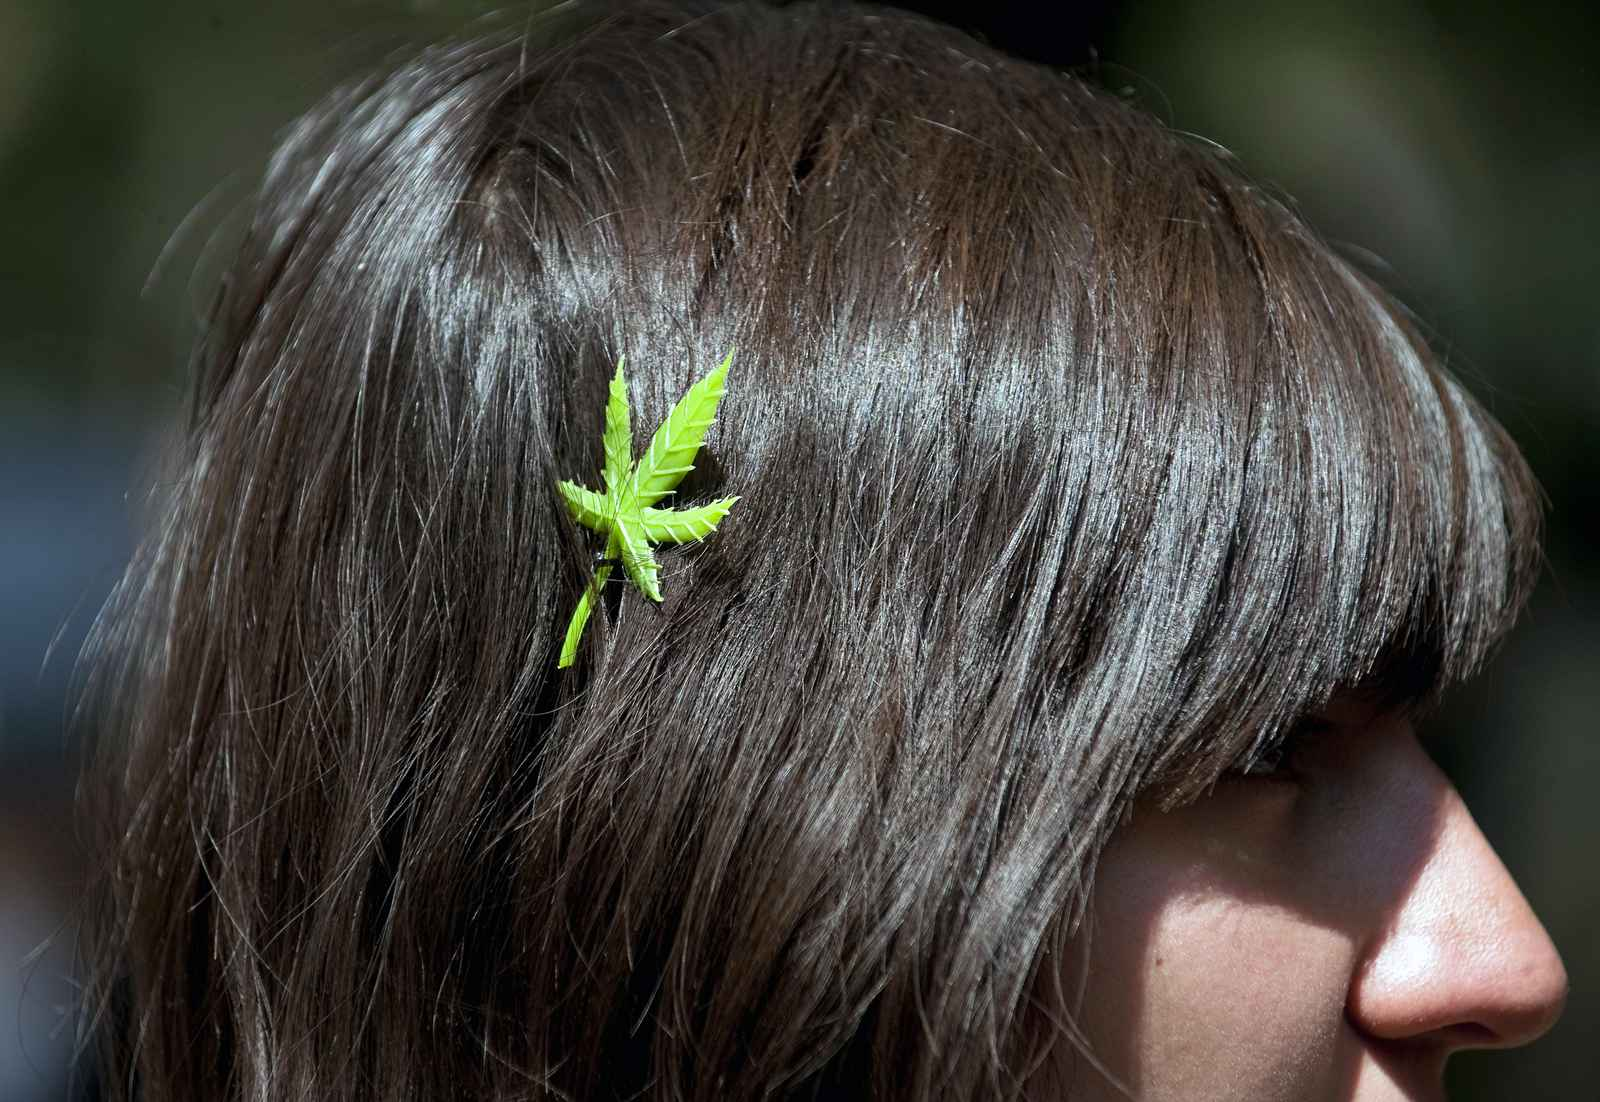 A woman wears a Marijuana hair slide during a rally in support of the International Day for the Liberation of Marijuana, in Mexico City, on May 8, 2010. AFP PHOTO/Alfredo ESTRELLA (Photo credit should read ALFREDO ESTRELLA/AFP/Getty Images)